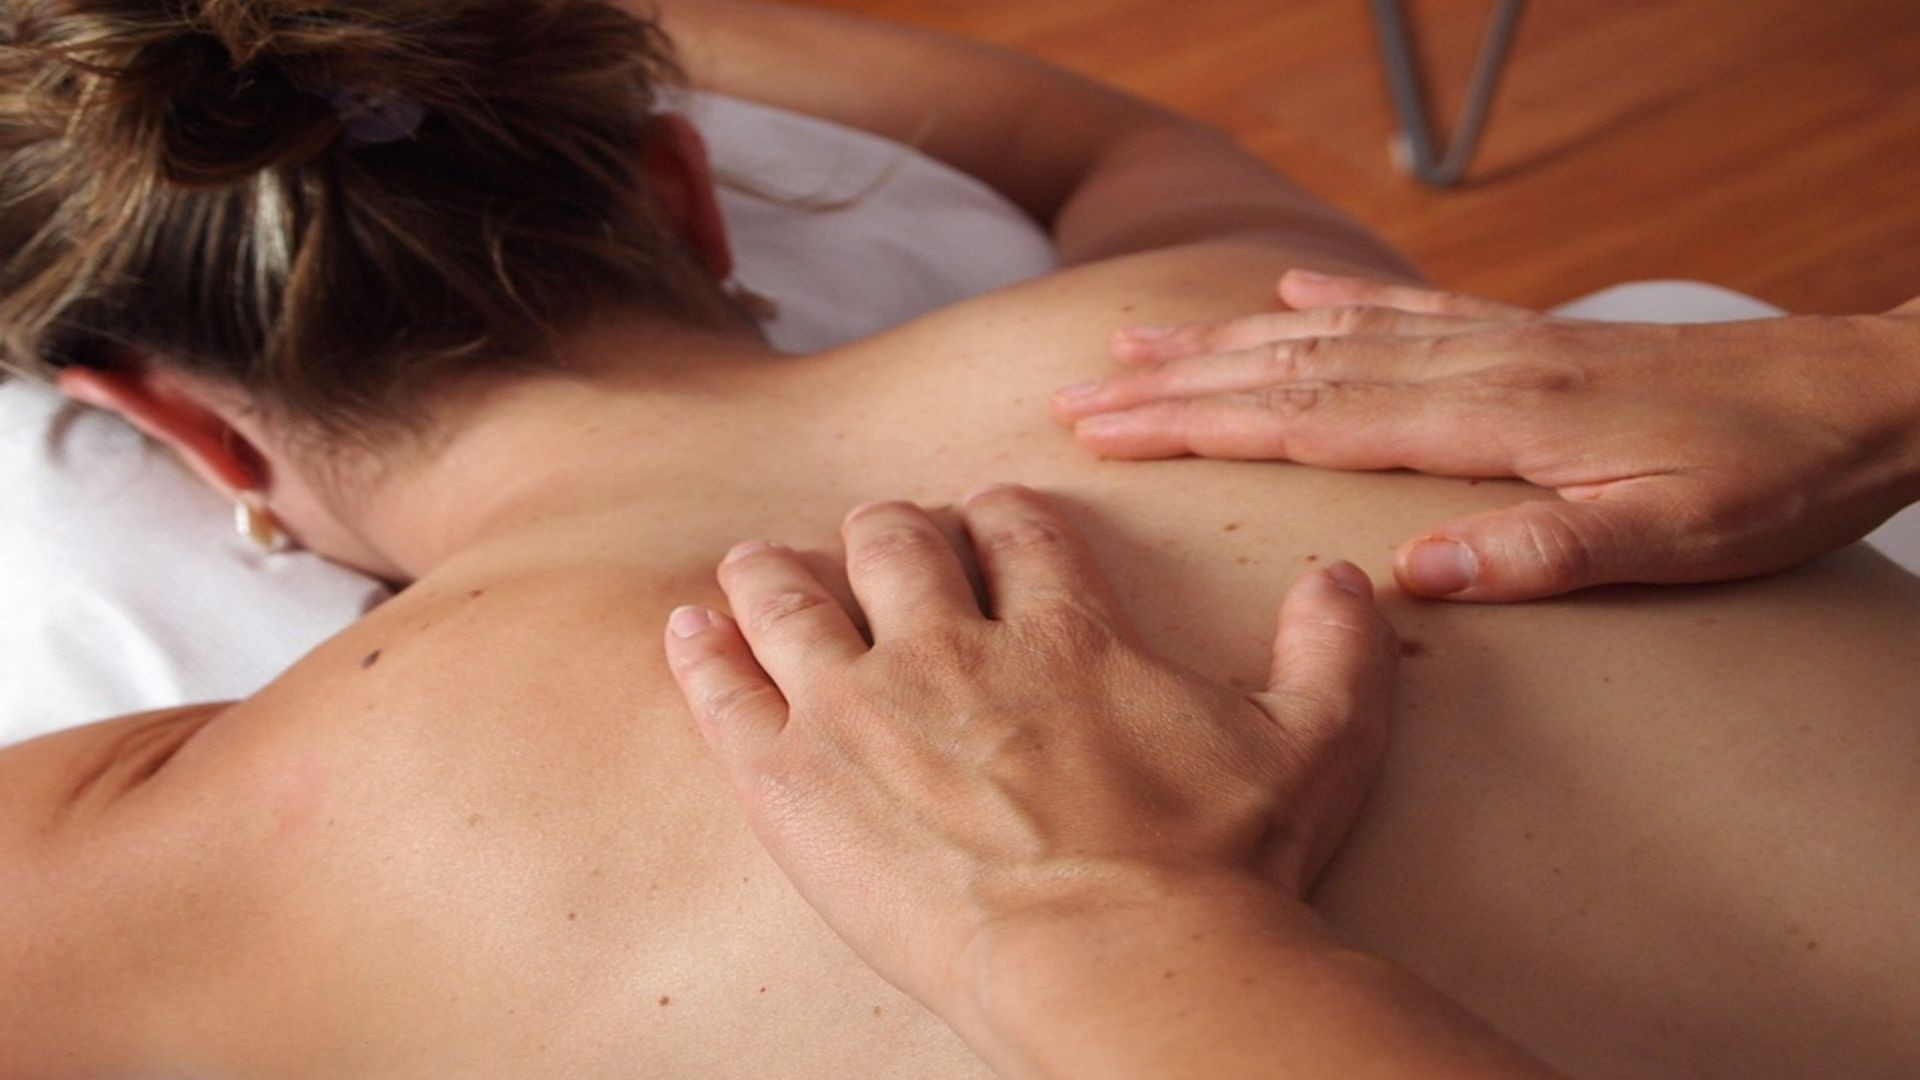 physiotherapy-567021_960_720 (1)